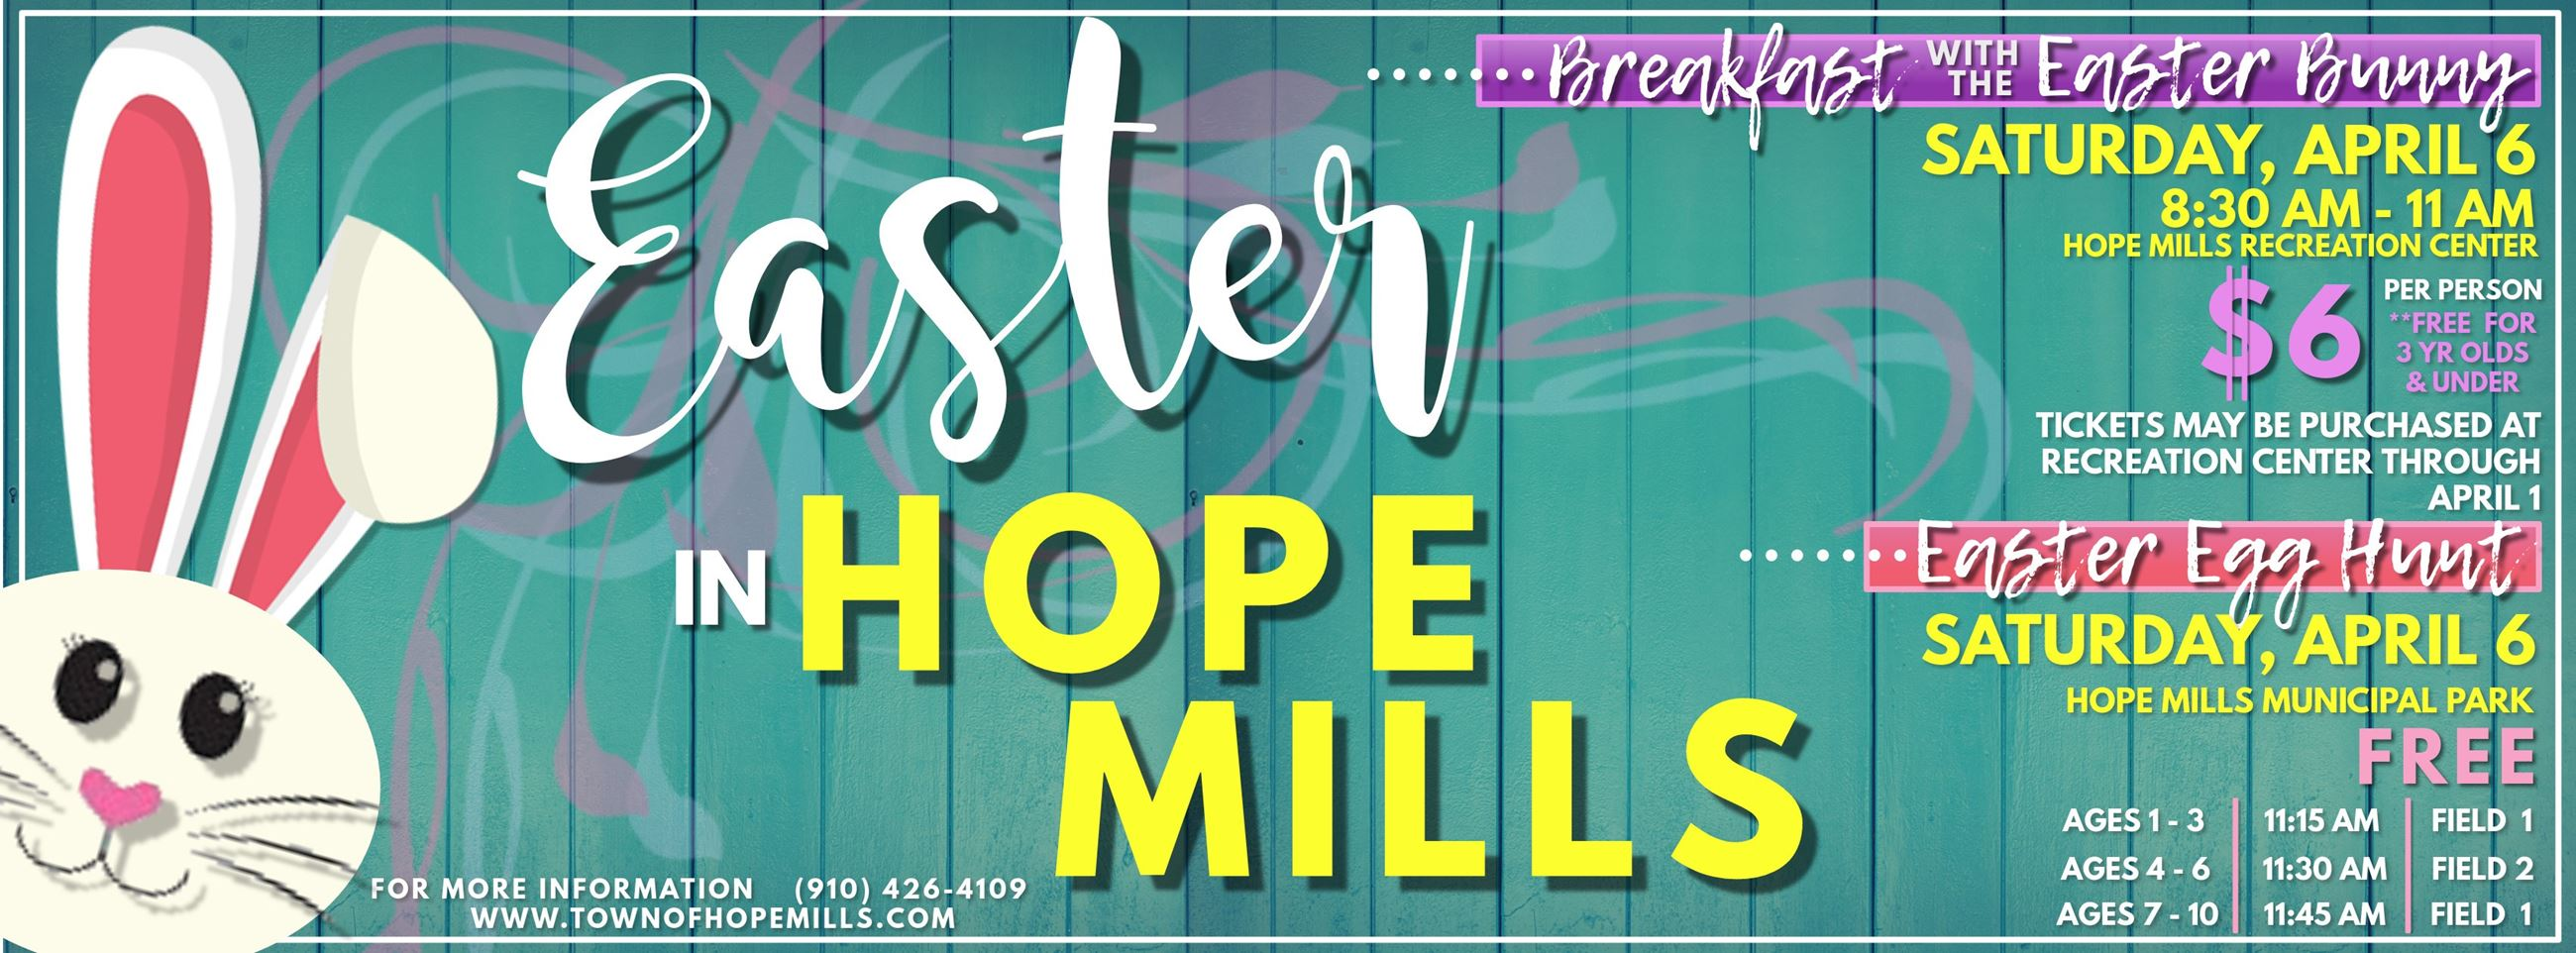 Easter in Hope Mills Facebook Cover Photo